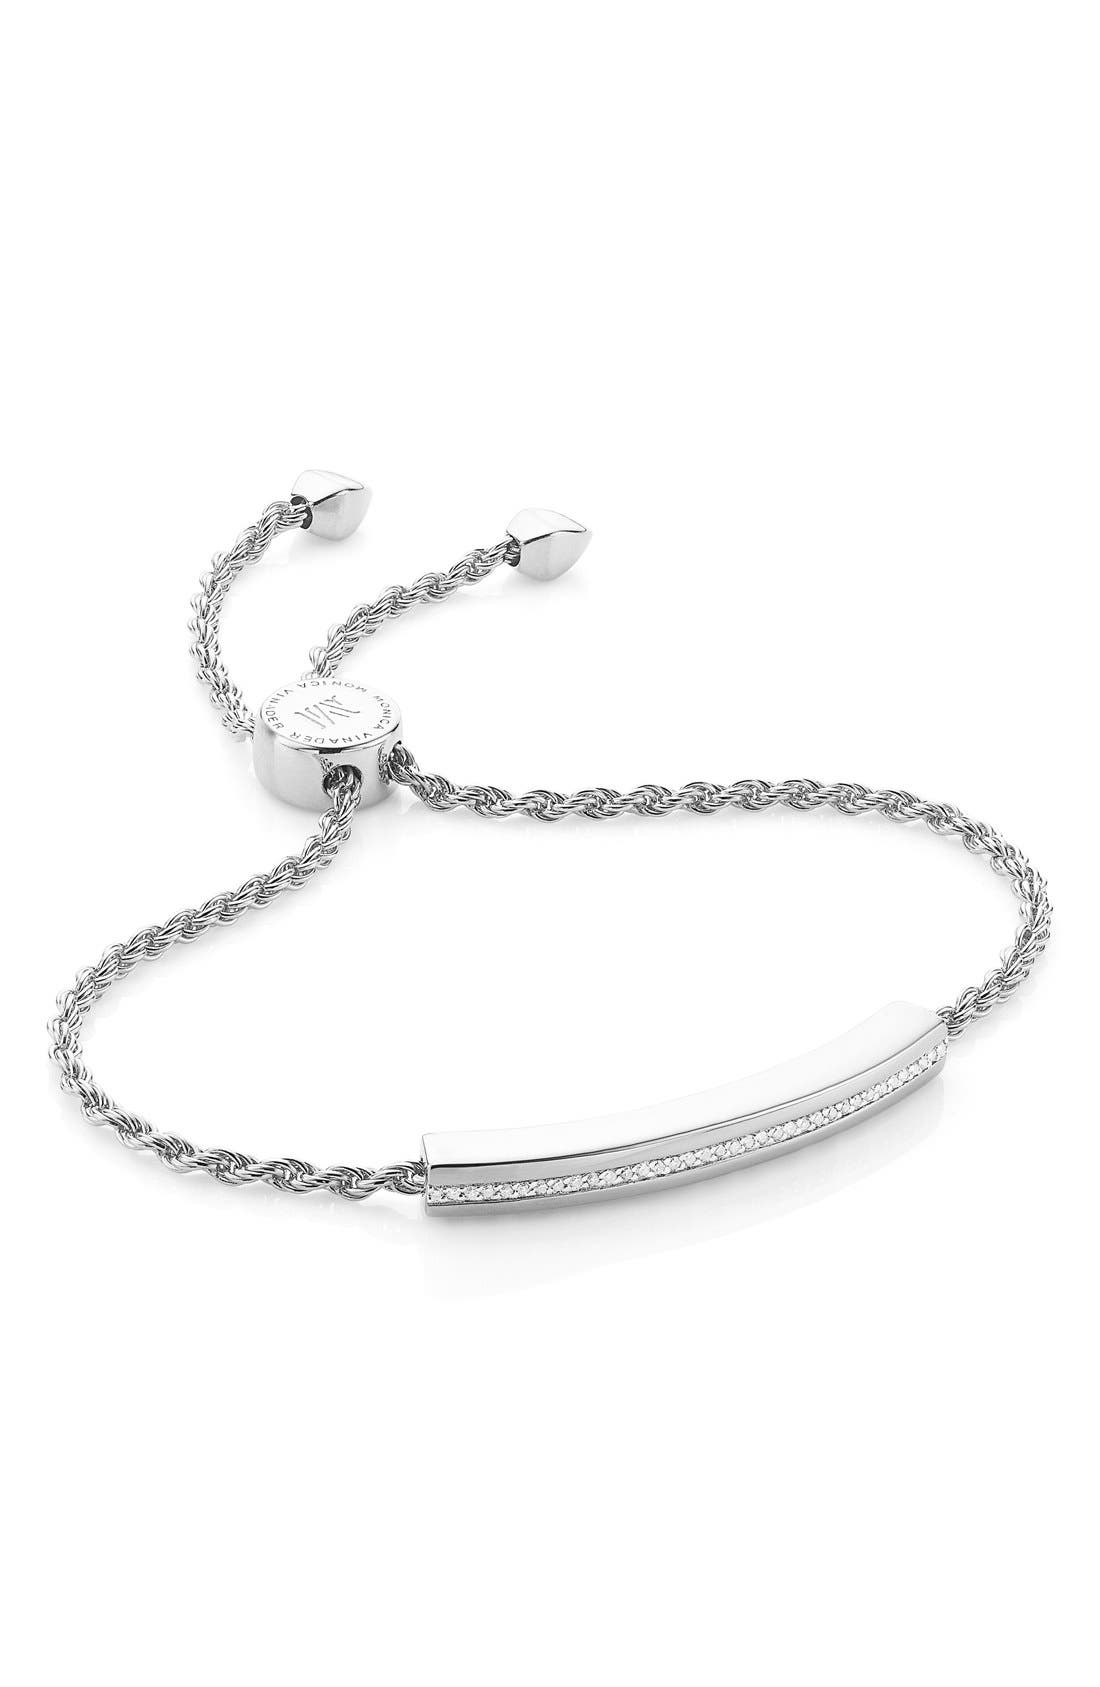 Engravable Linear Diamond Chain Bracelet,                             Main thumbnail 1, color,                             SILVER/ DIAMOND